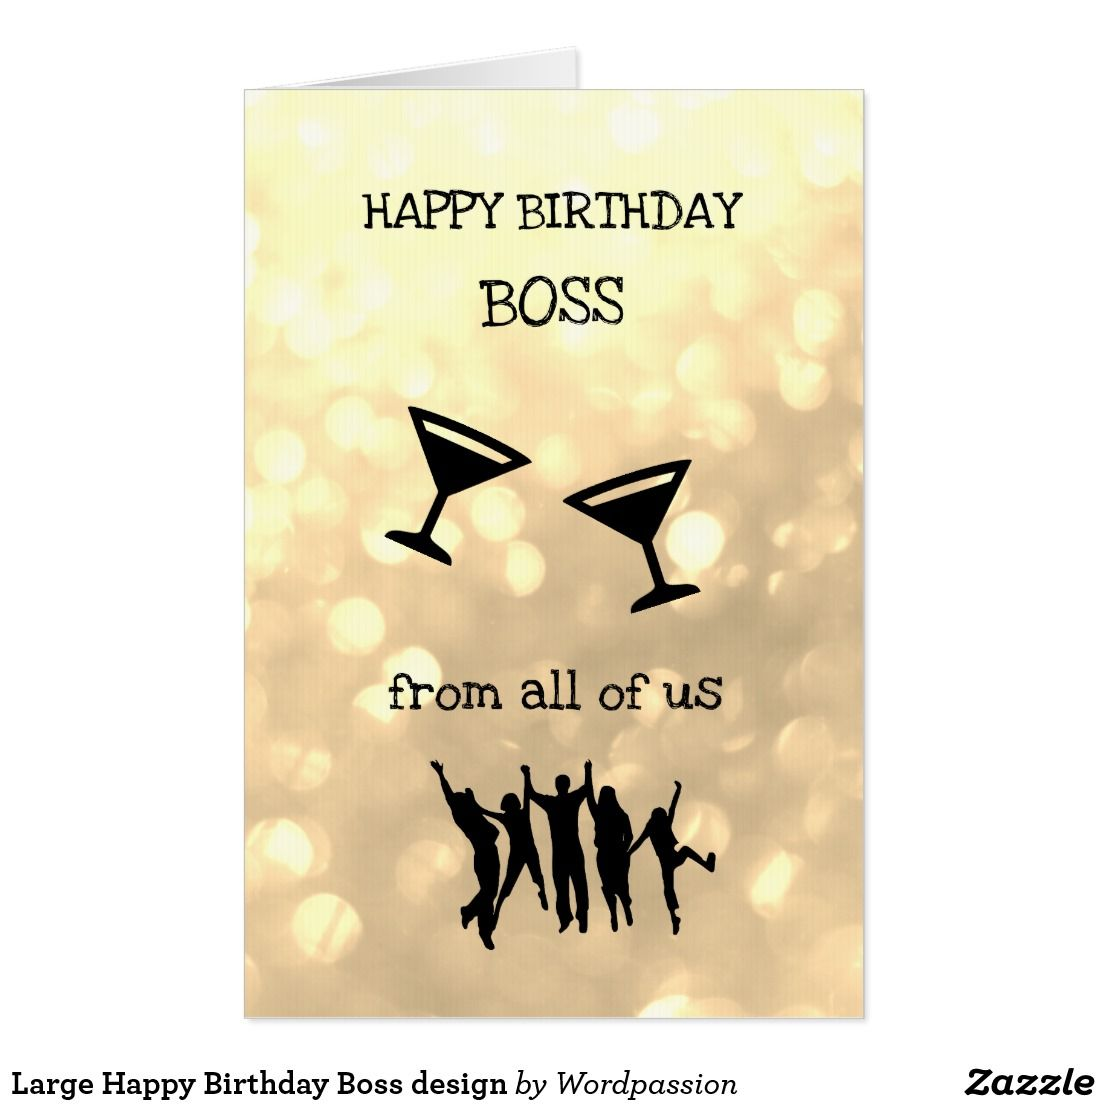 Happy Birthday Wishes To My Boss Quotes: Large Happy Birthday Boss Design Card